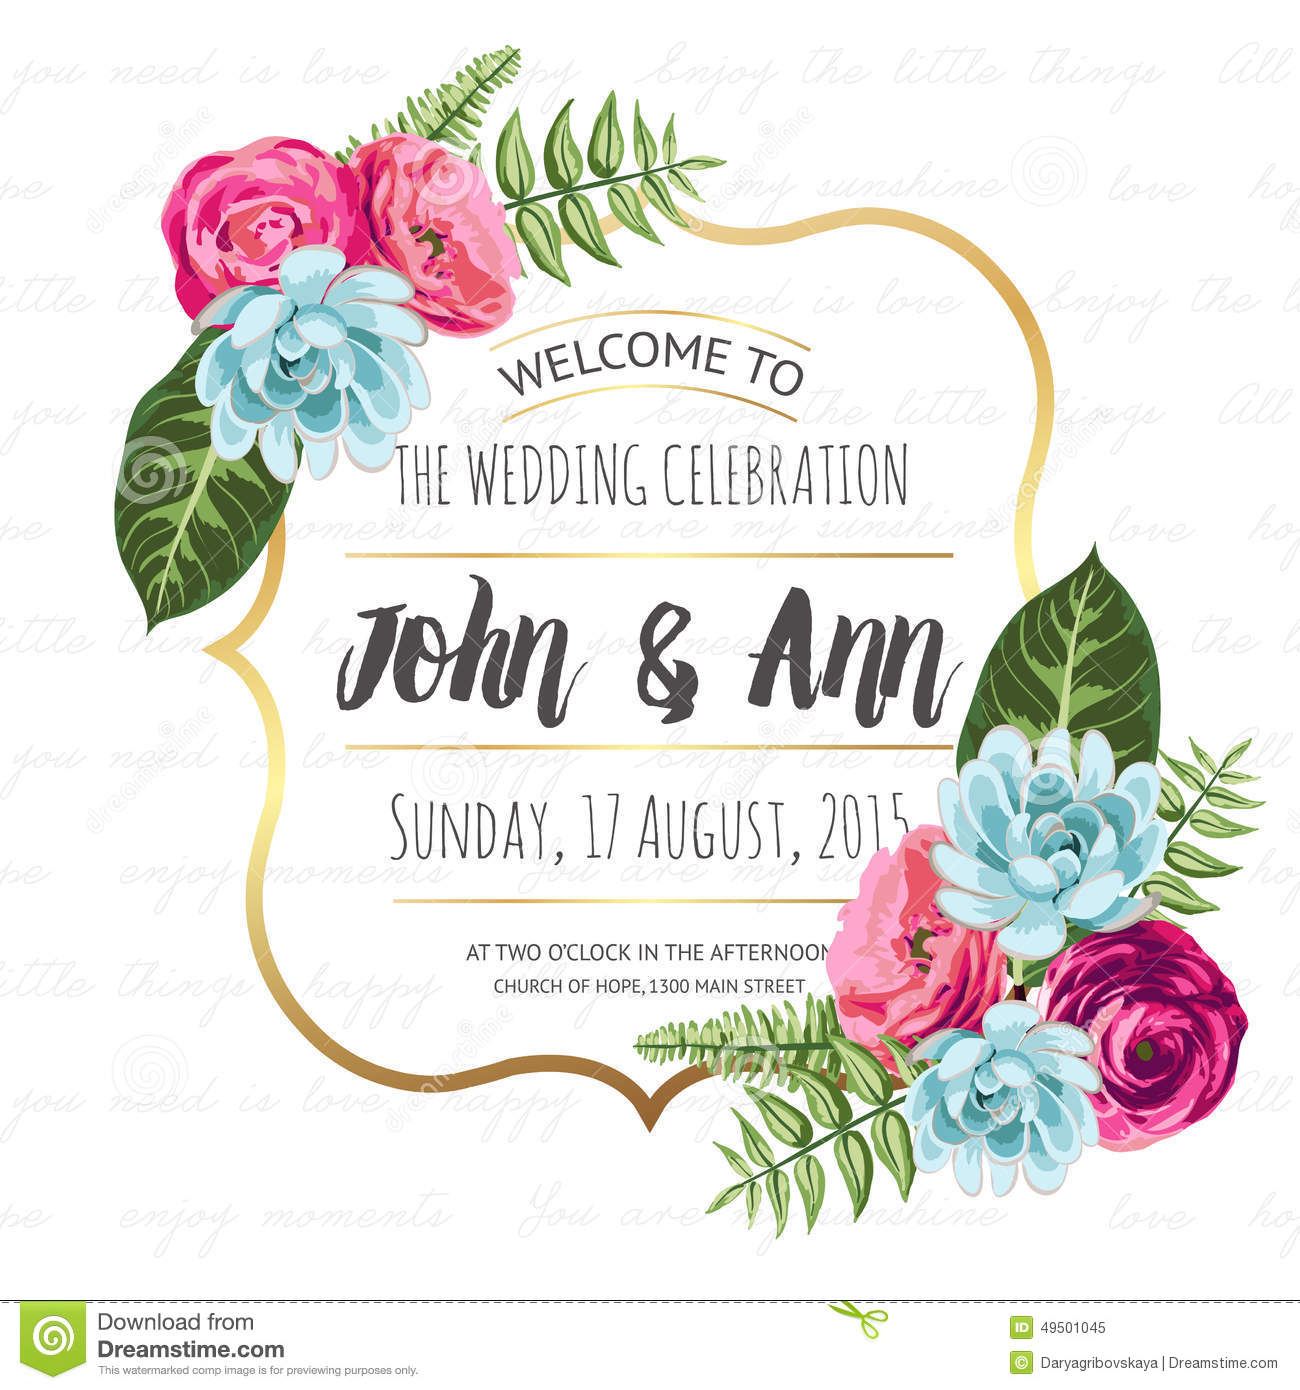 Wedding Invitation Card With Painted Flowers Stock Image - Image of ...